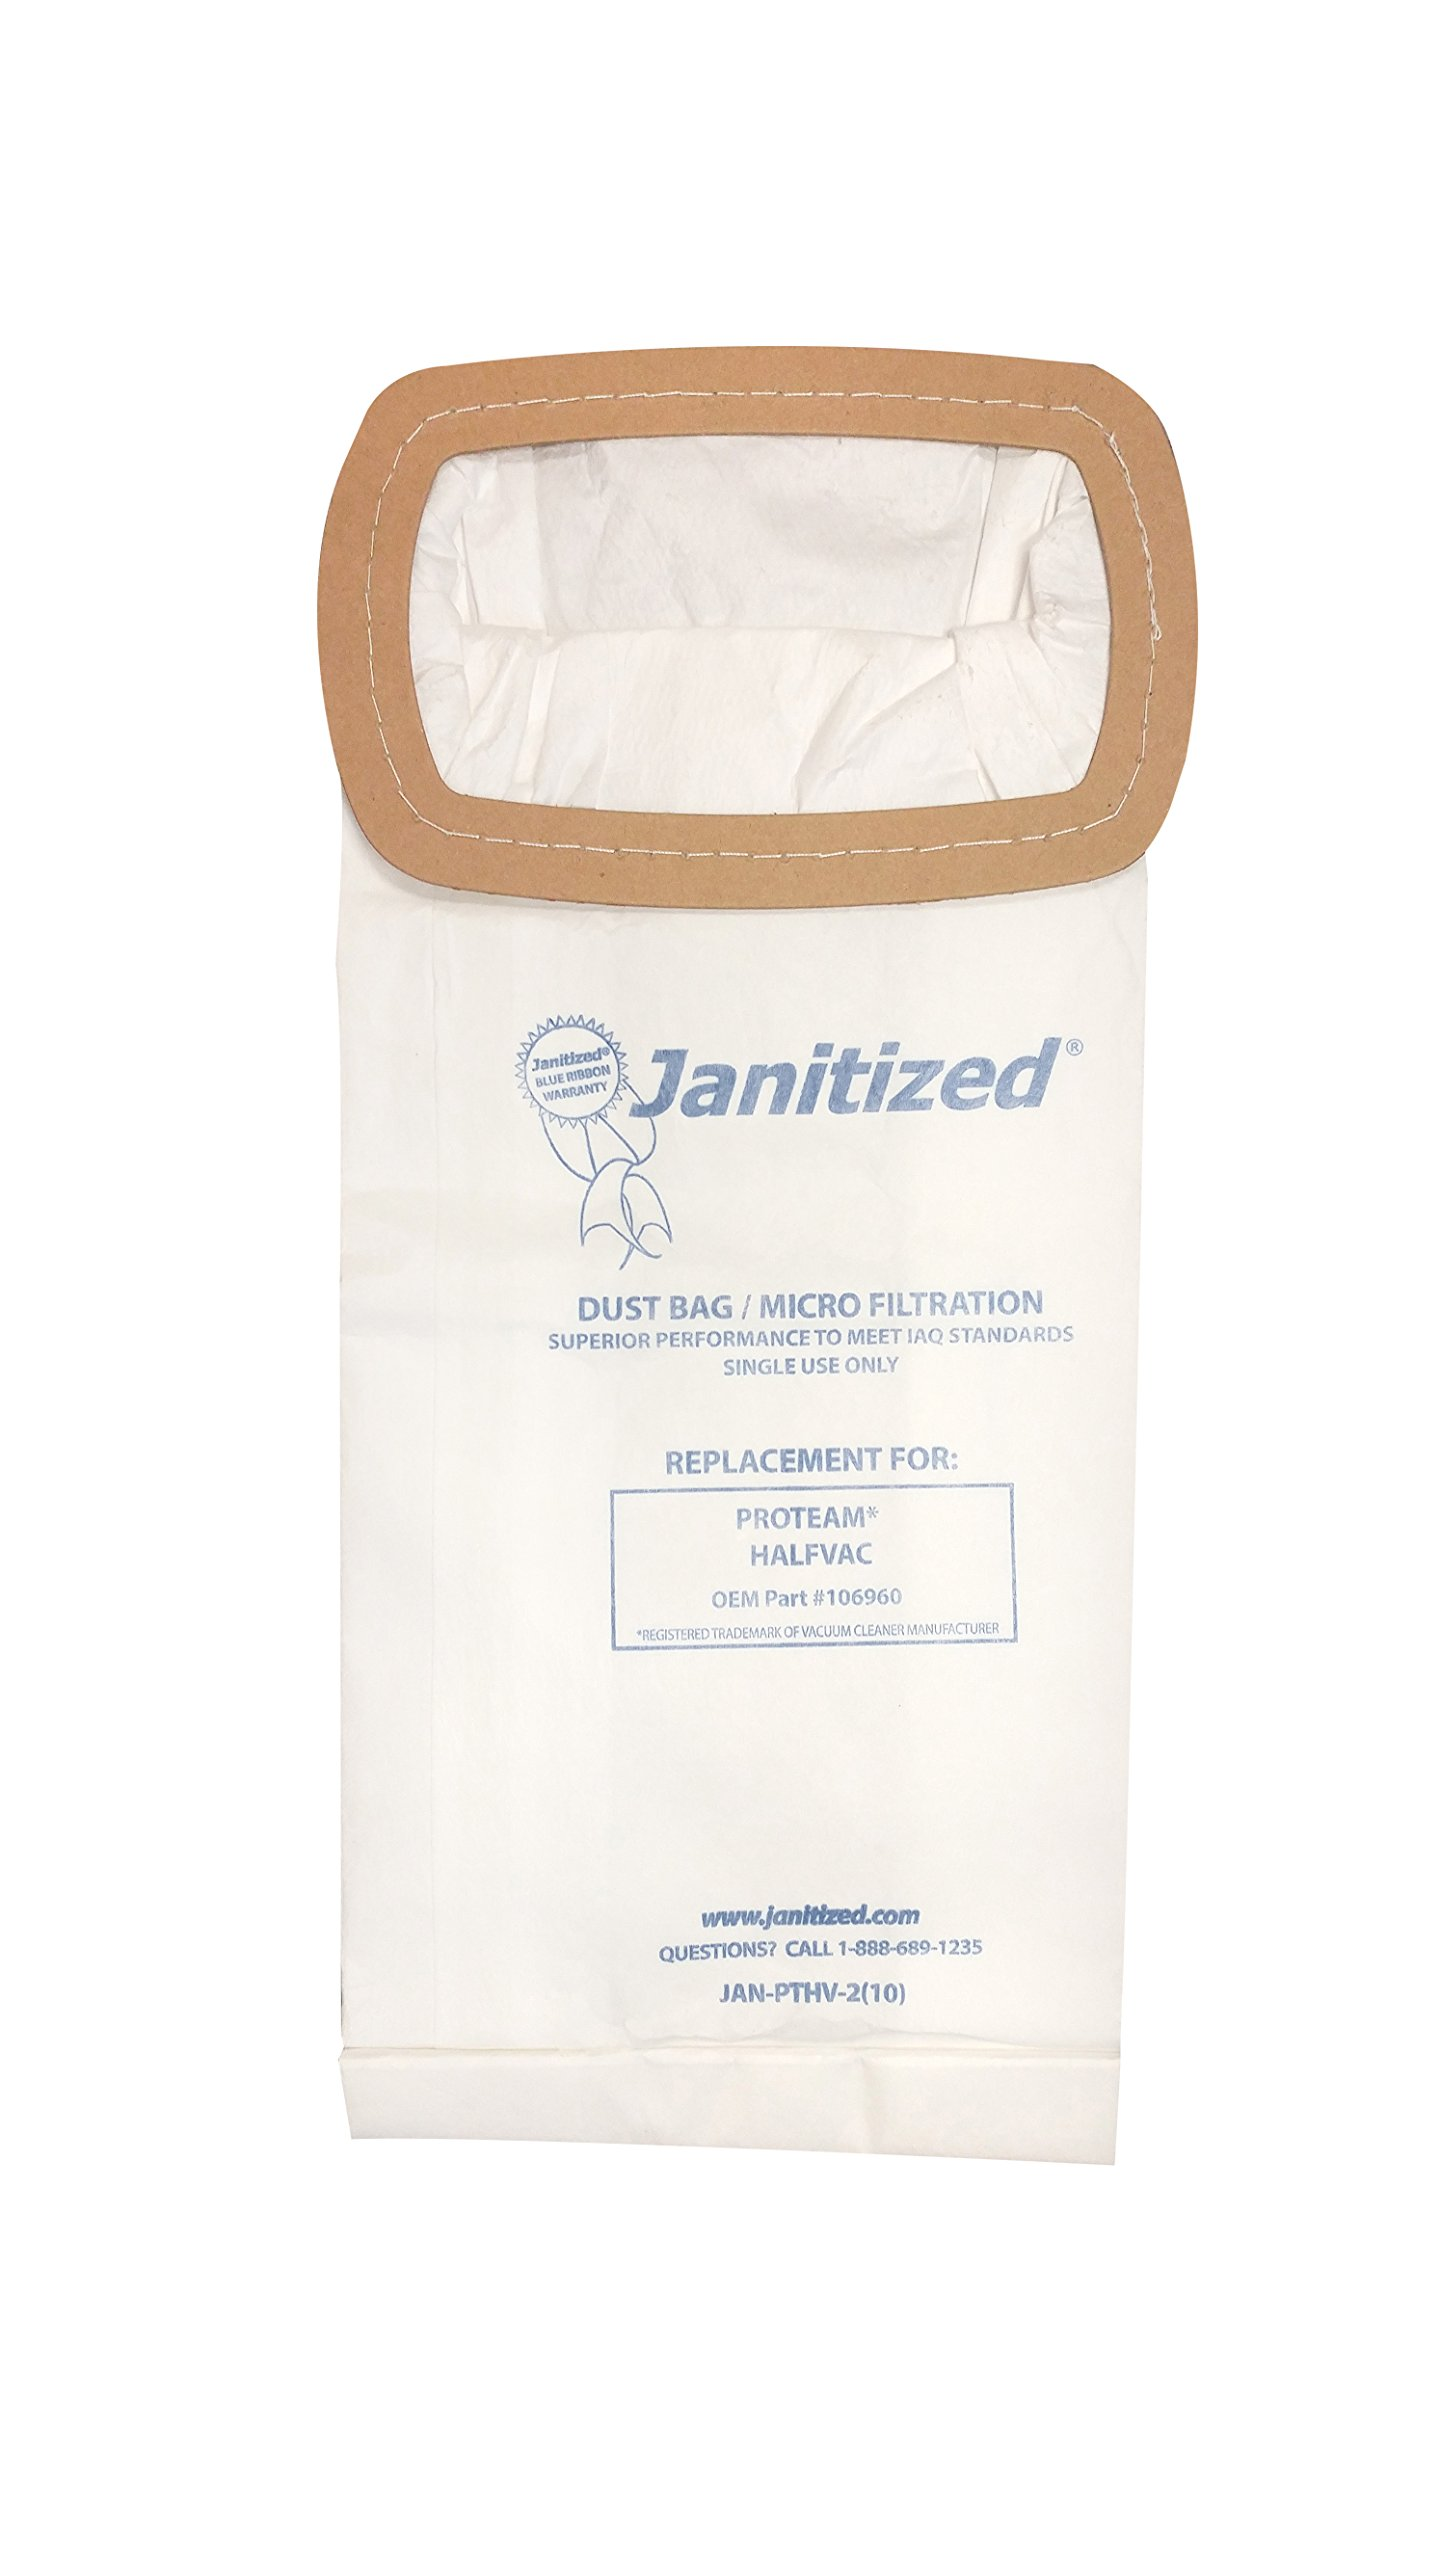 Janitized JAN-PTHV-2(10) Premium Replacement Commercial Vacuum Paper Bag for ProTeam Half Vac Vacuum Cleaners, OEM#106960 (Pack of 10)